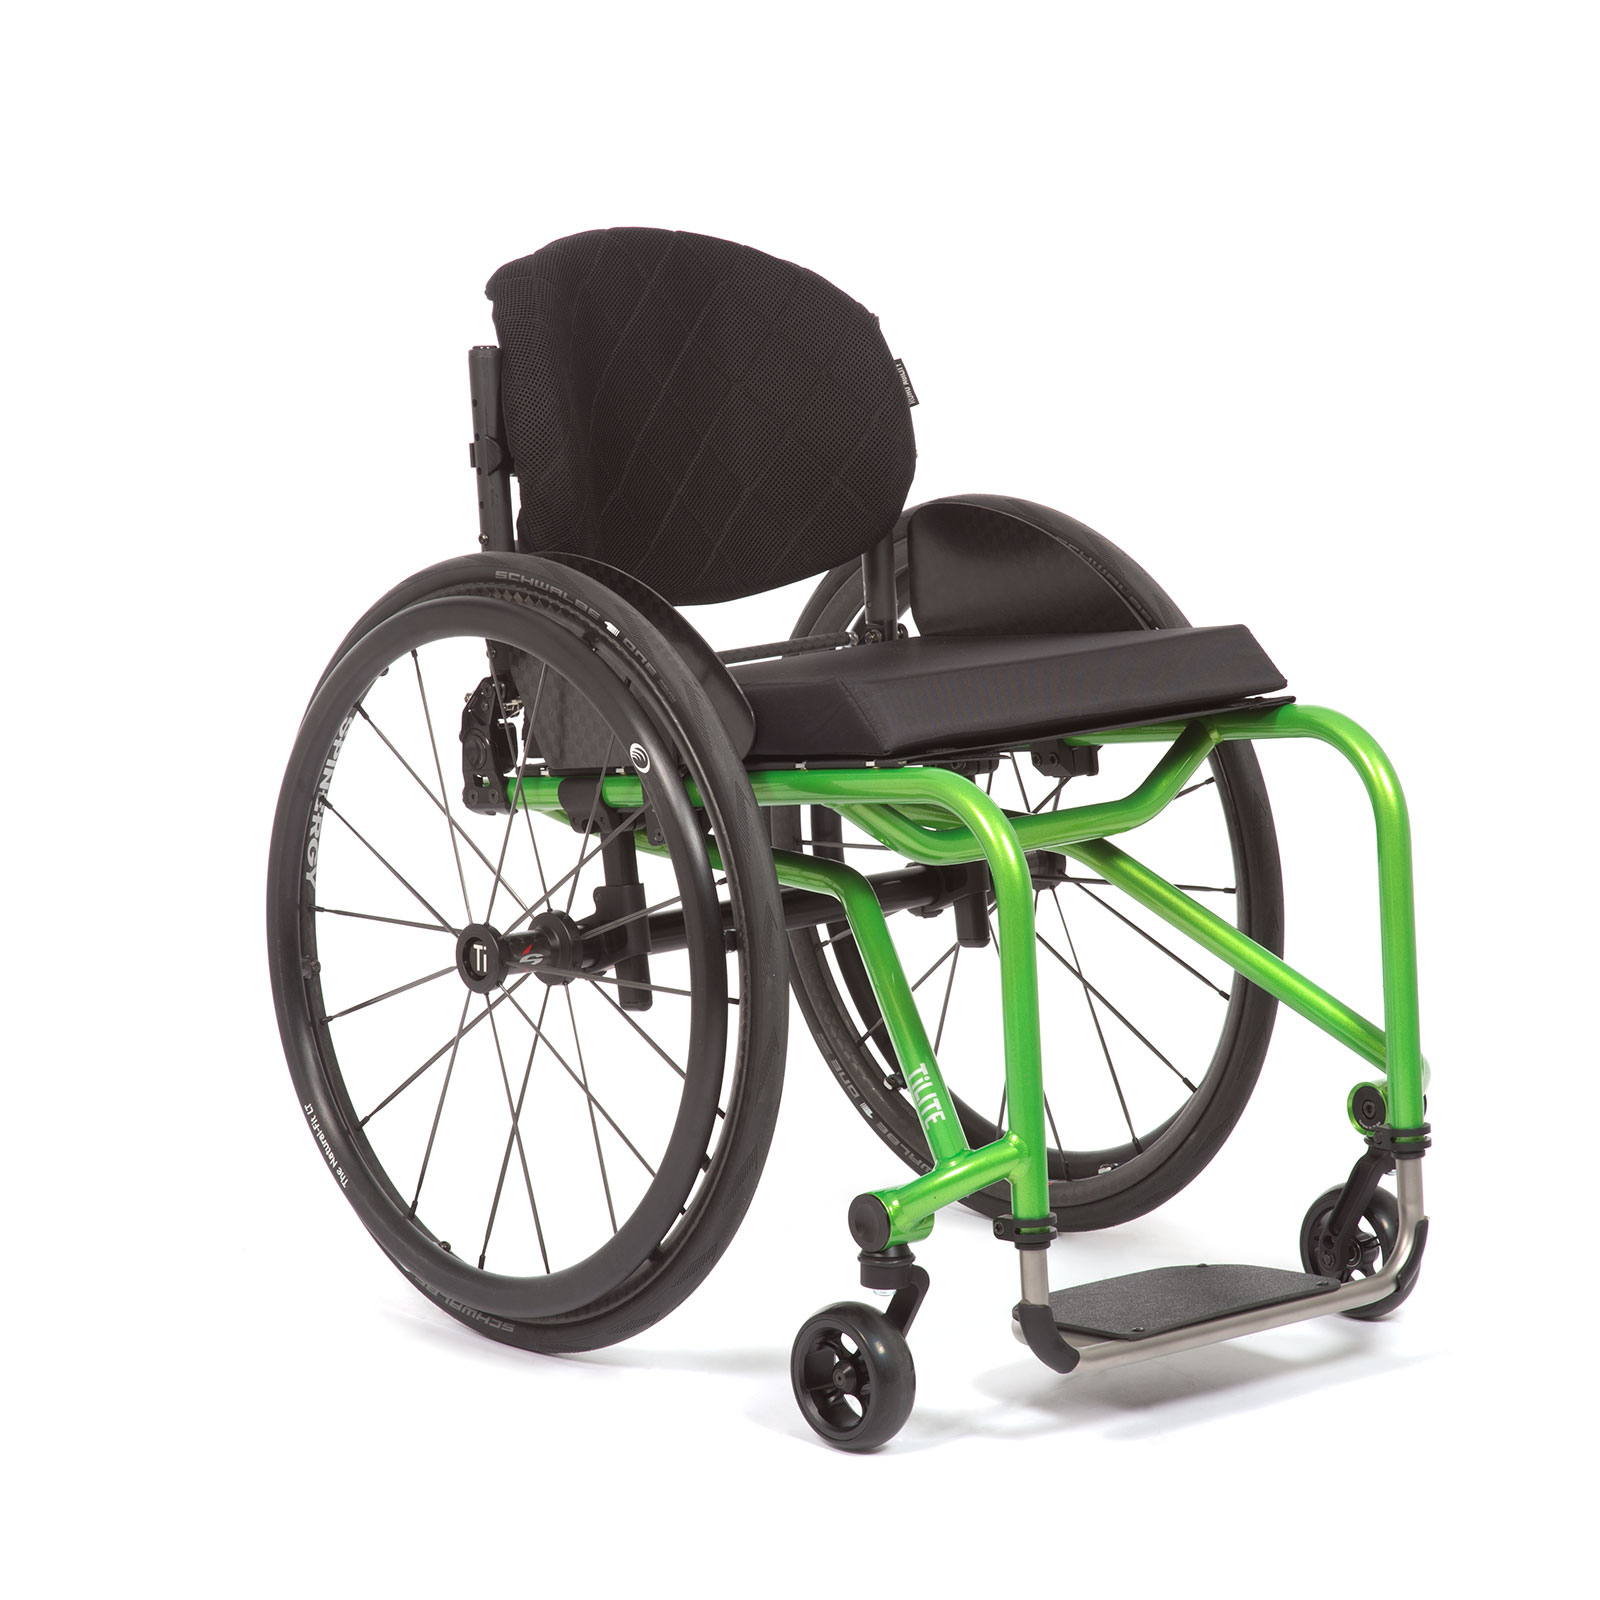 The Right Mid view of acid green Wheelchair.